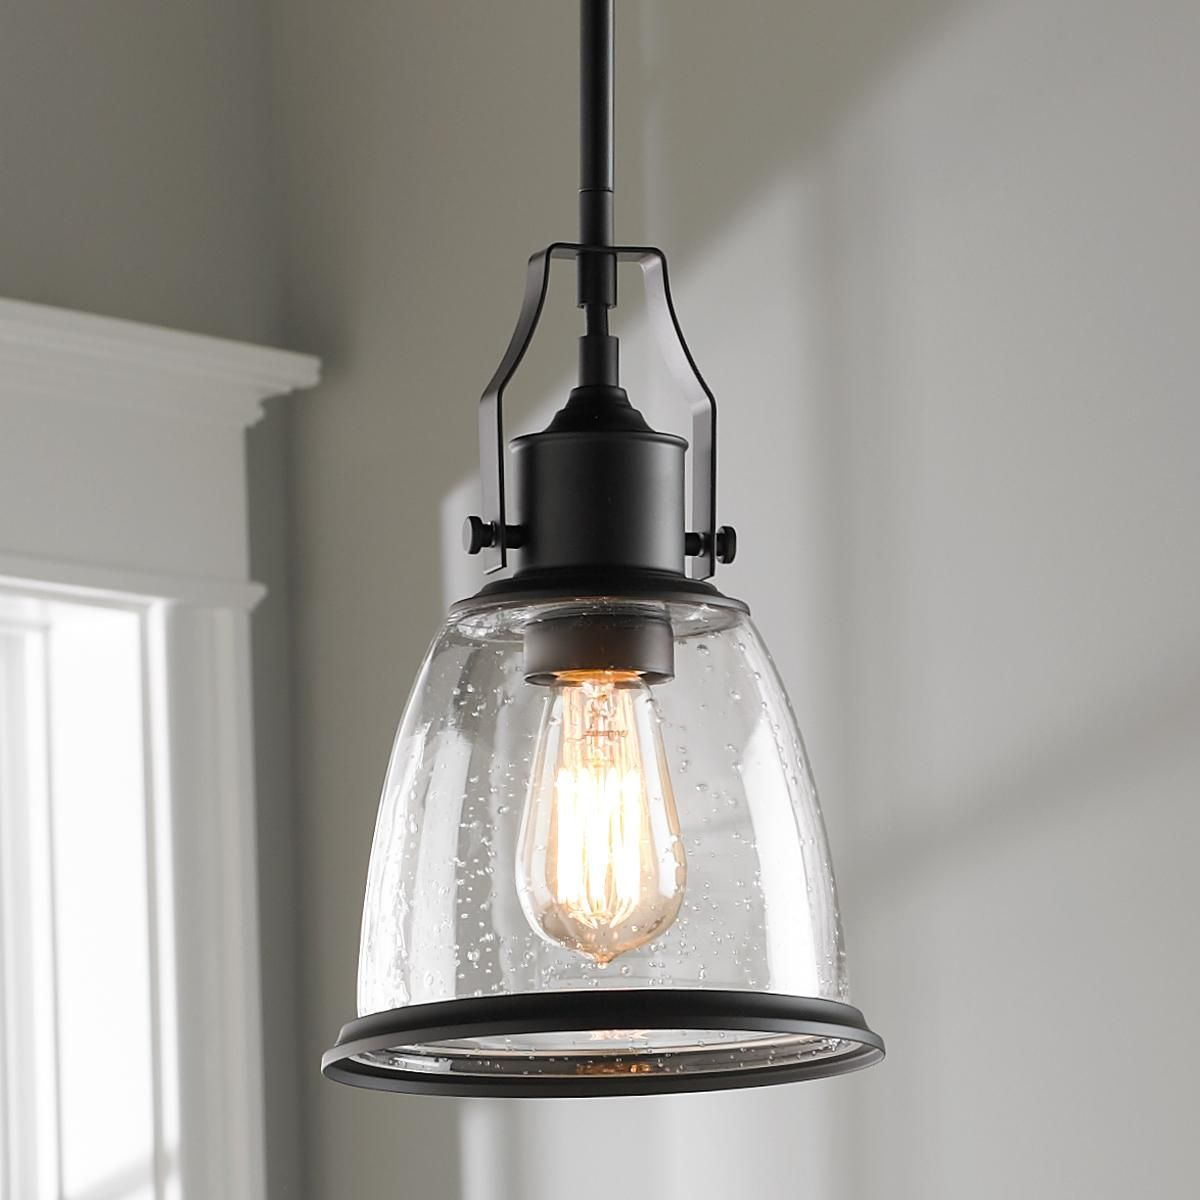 classic bell shade pendant in 2019 industrial chic rustic pendant lighting kitchen pendant. Black Bedroom Furniture Sets. Home Design Ideas